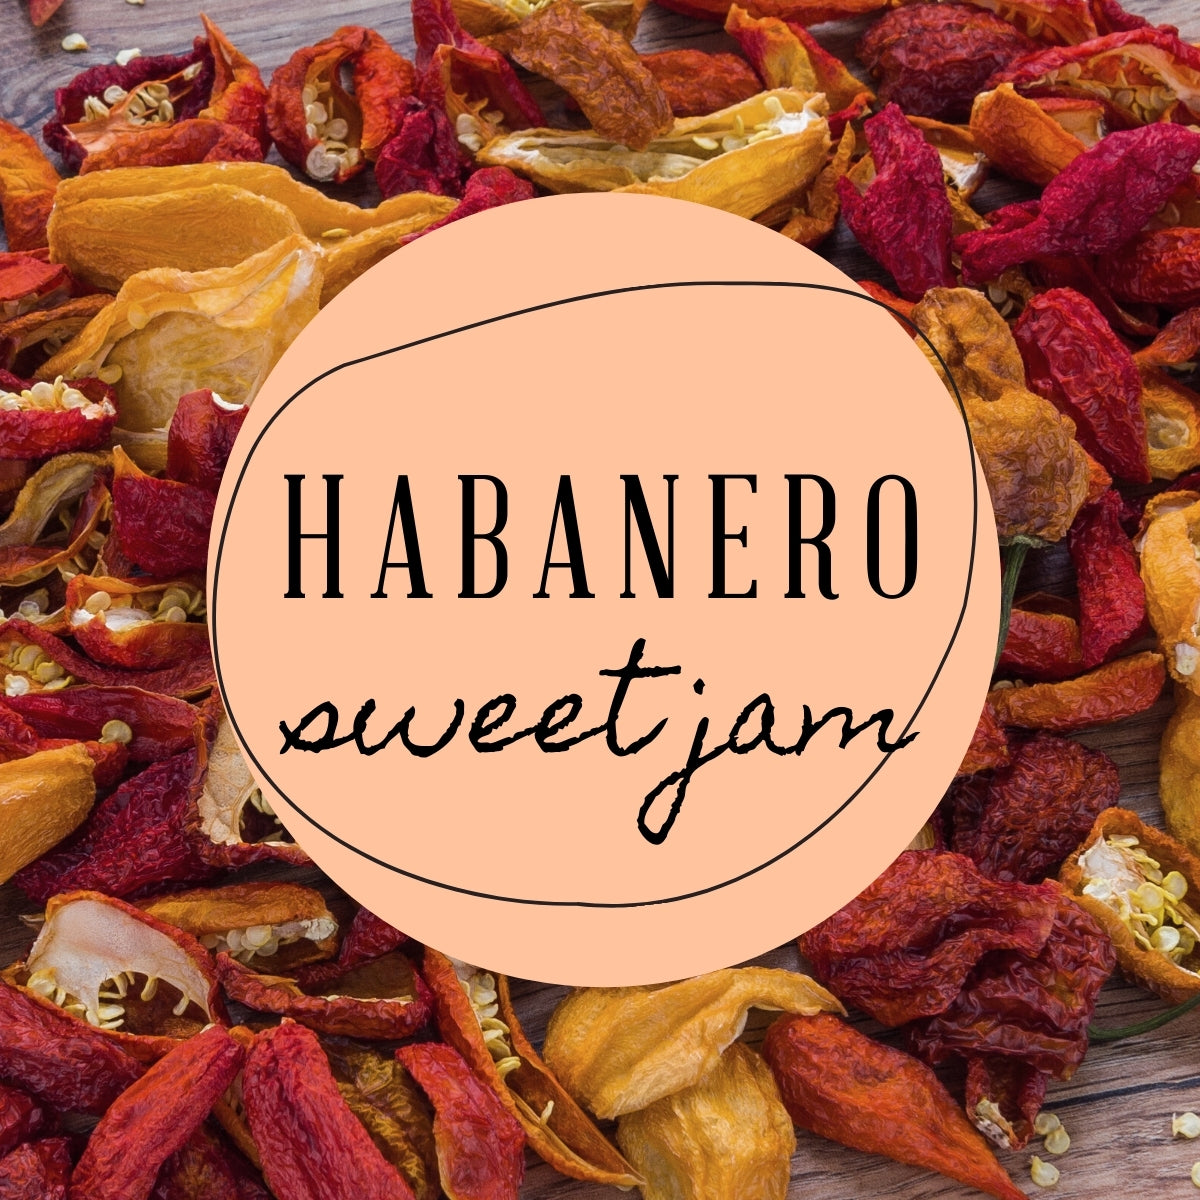 Habanero Sweet Jam Highly Scented Candle that Lasts Through to the end